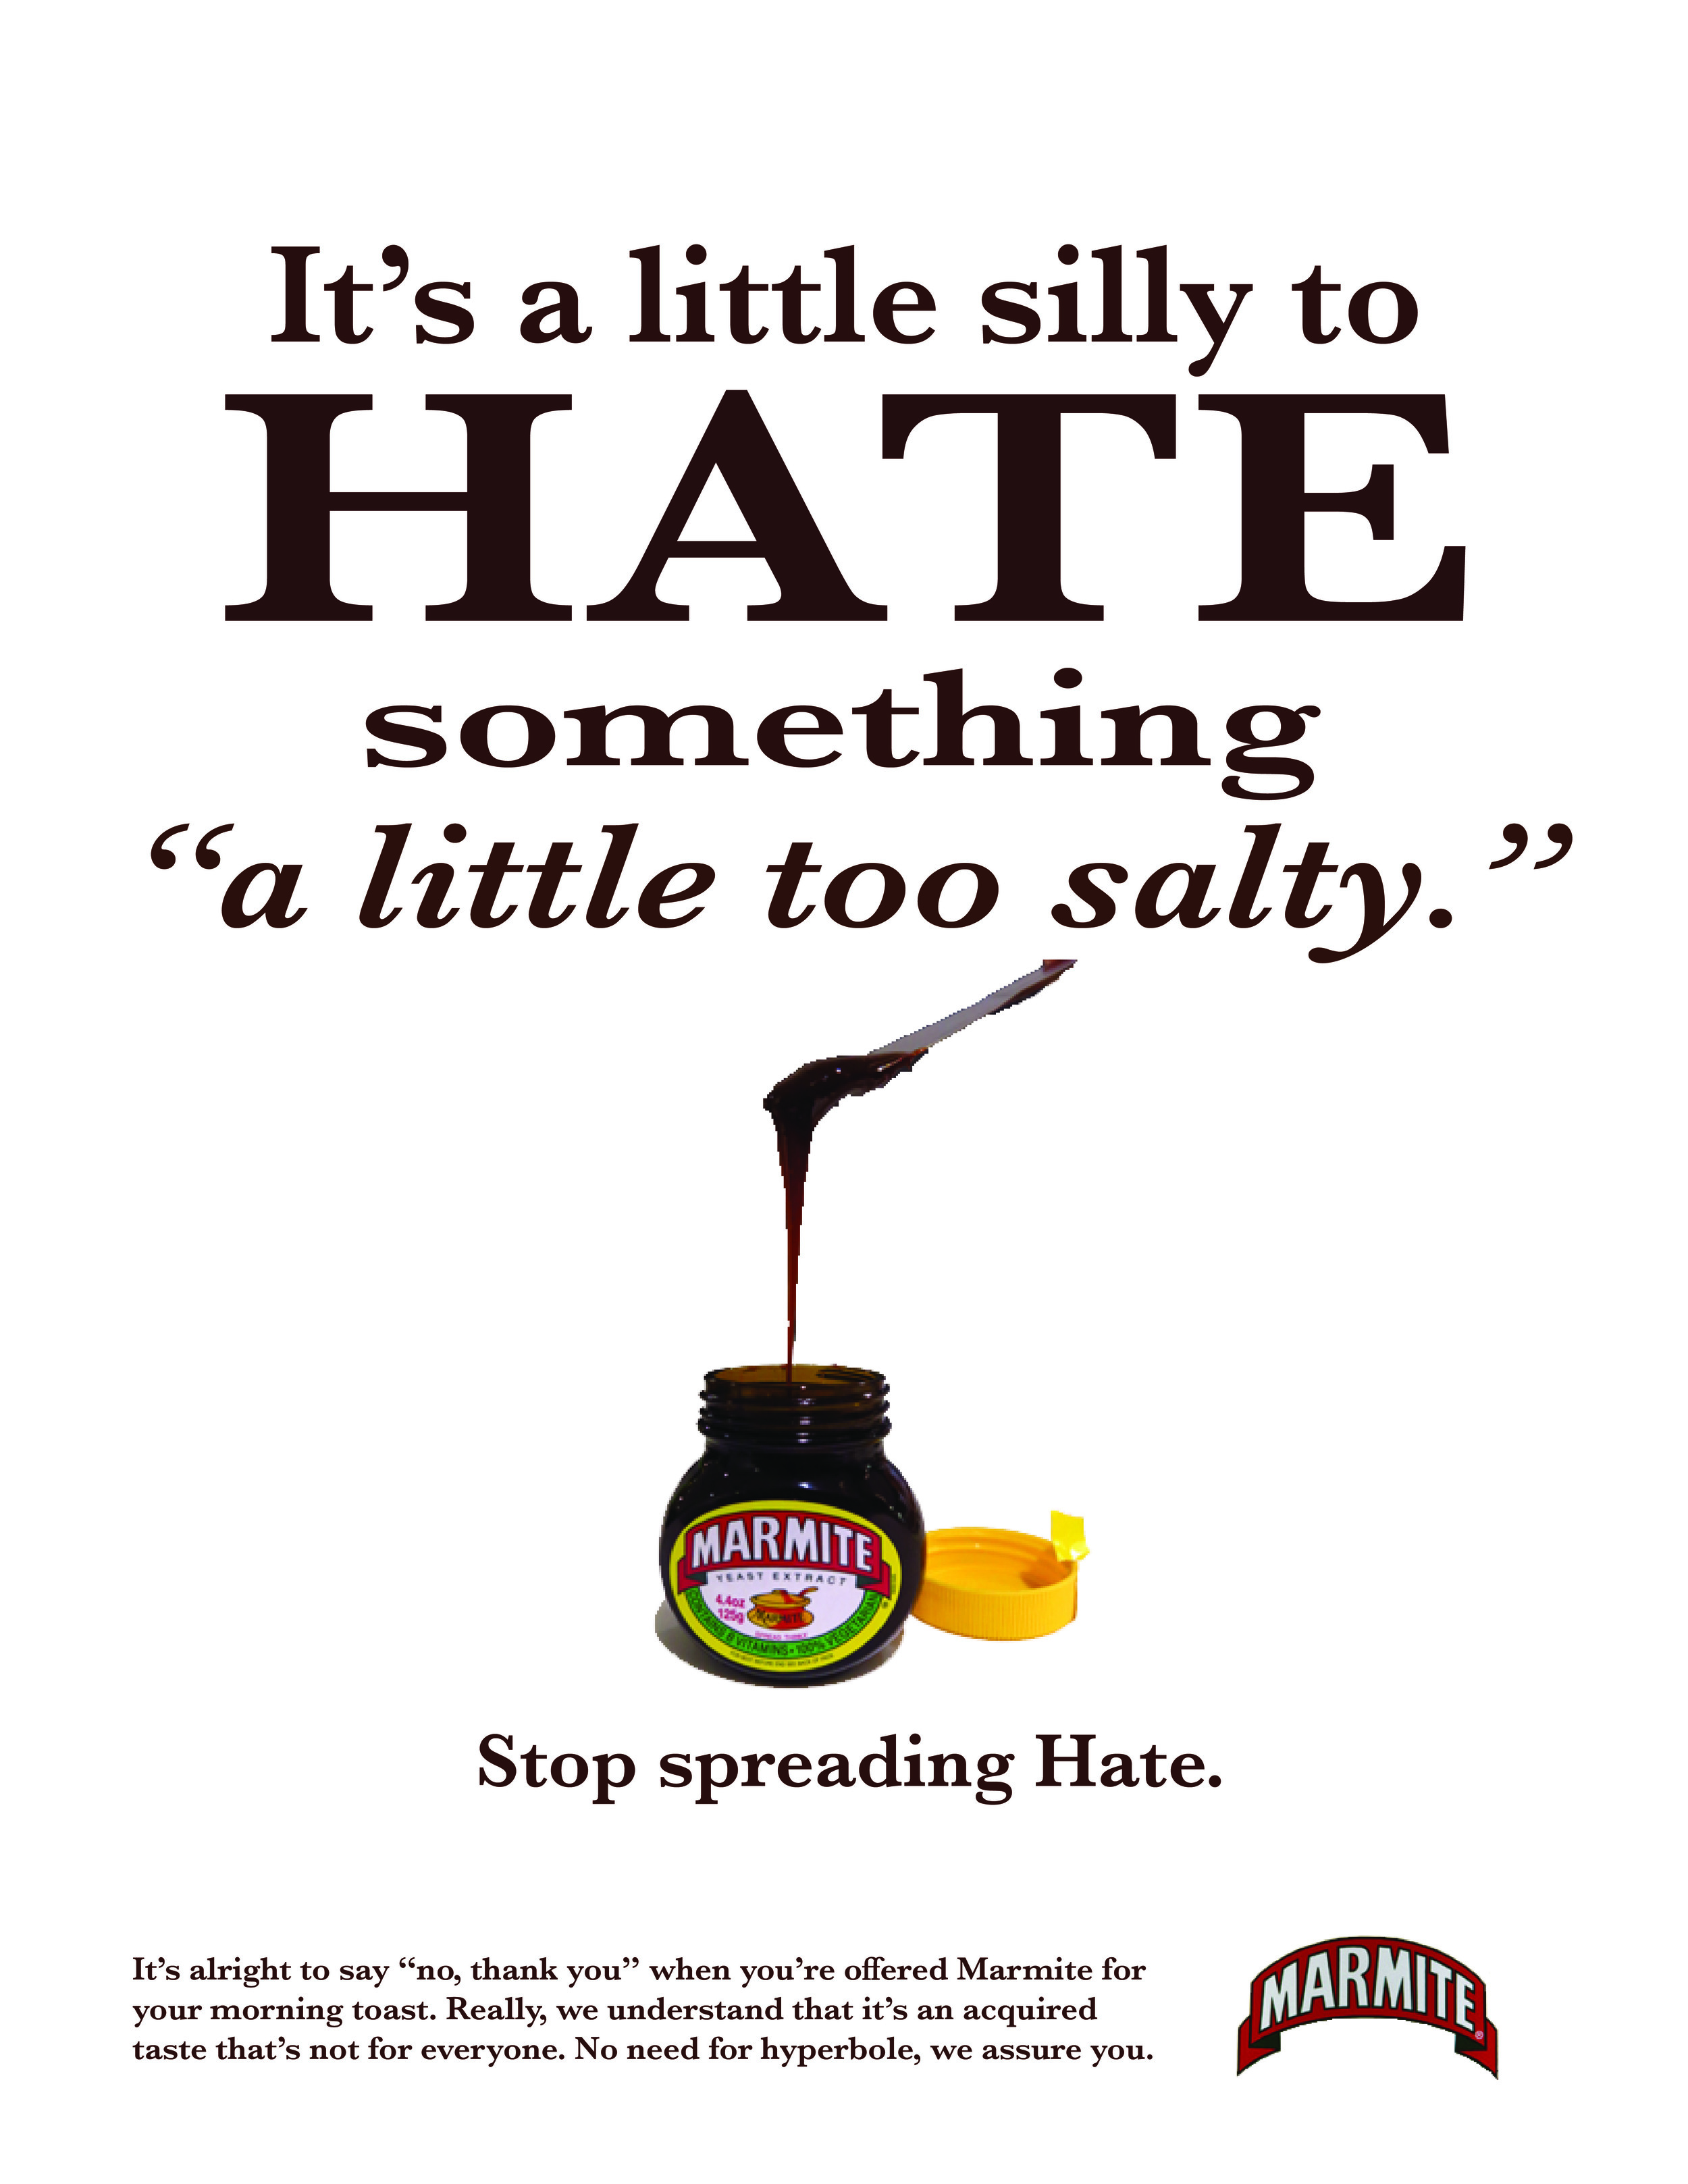 """It's alright to say """"no, thank you"""" when you're offered Marmite for your morning toast. Really, we understand that it's an acquired taste that's not for everyone. No need for hyperbole, we assure you."""